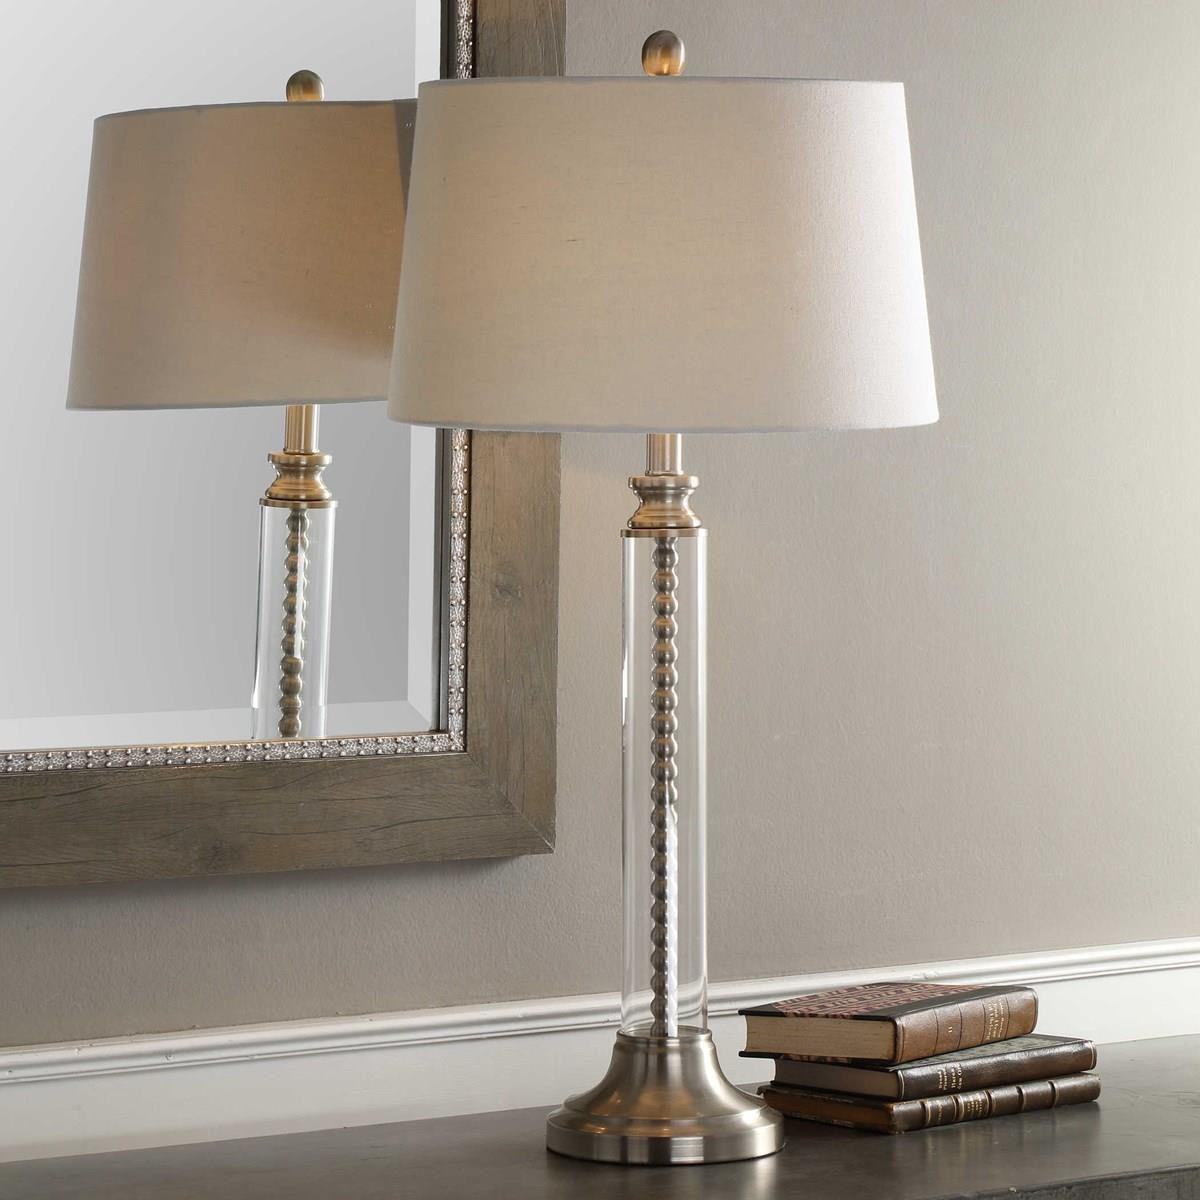 Table Lamps ATHENA TABLE LAMP by Unique at Walker's Furniture